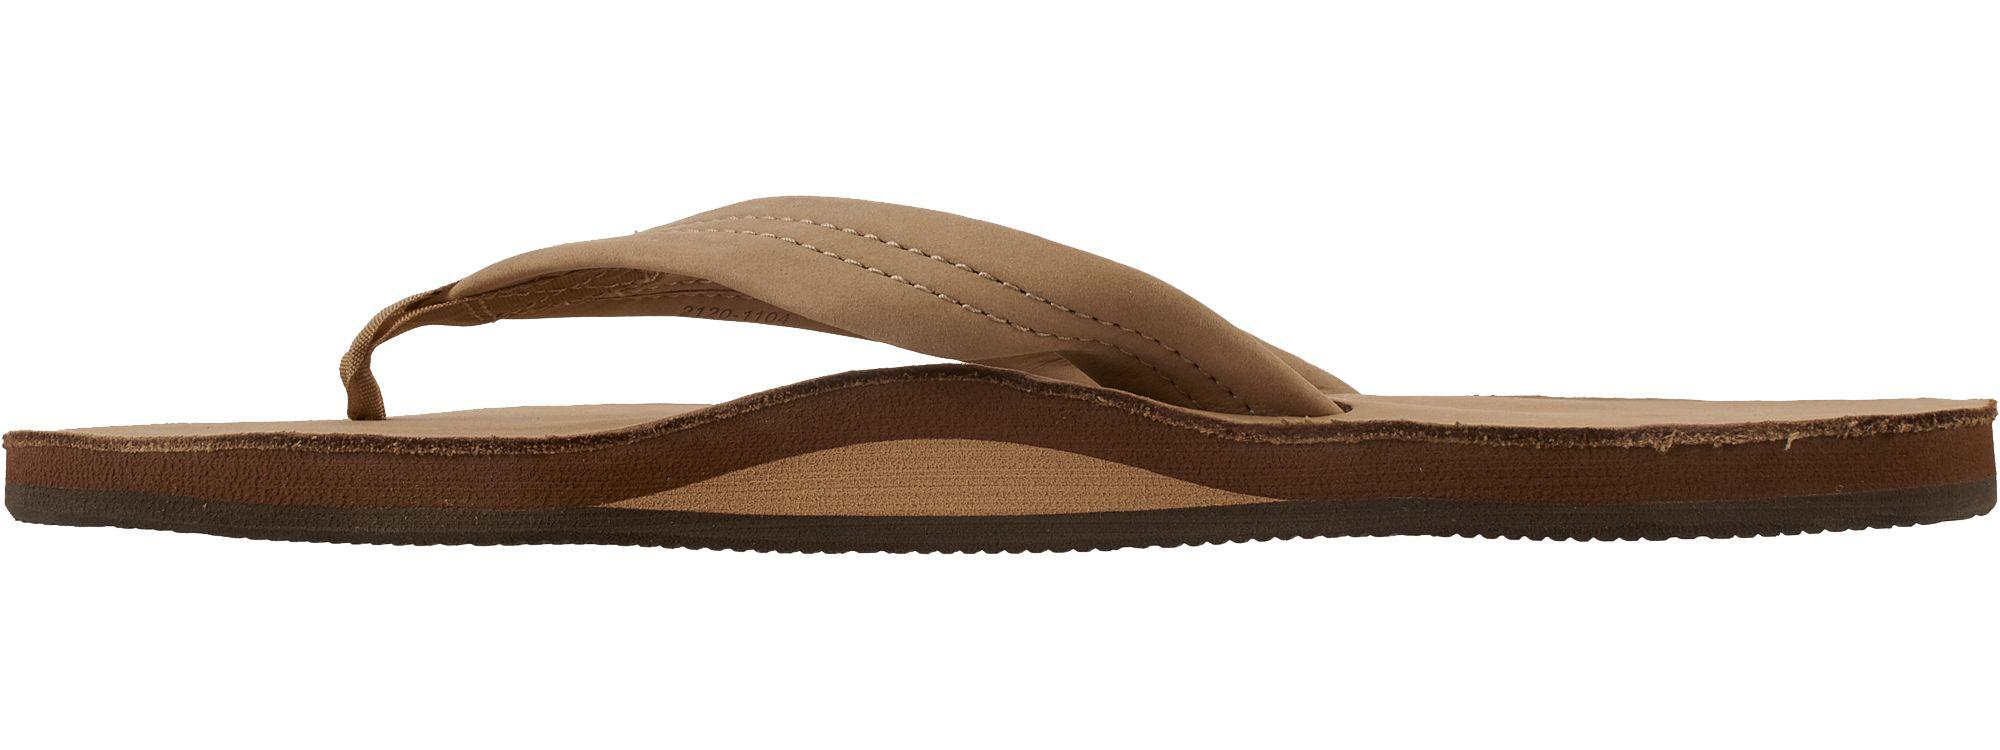 b2c5bee16a10 Lyst - Rainbow Sandals Leather 301 Flip Flops in Brown for Men